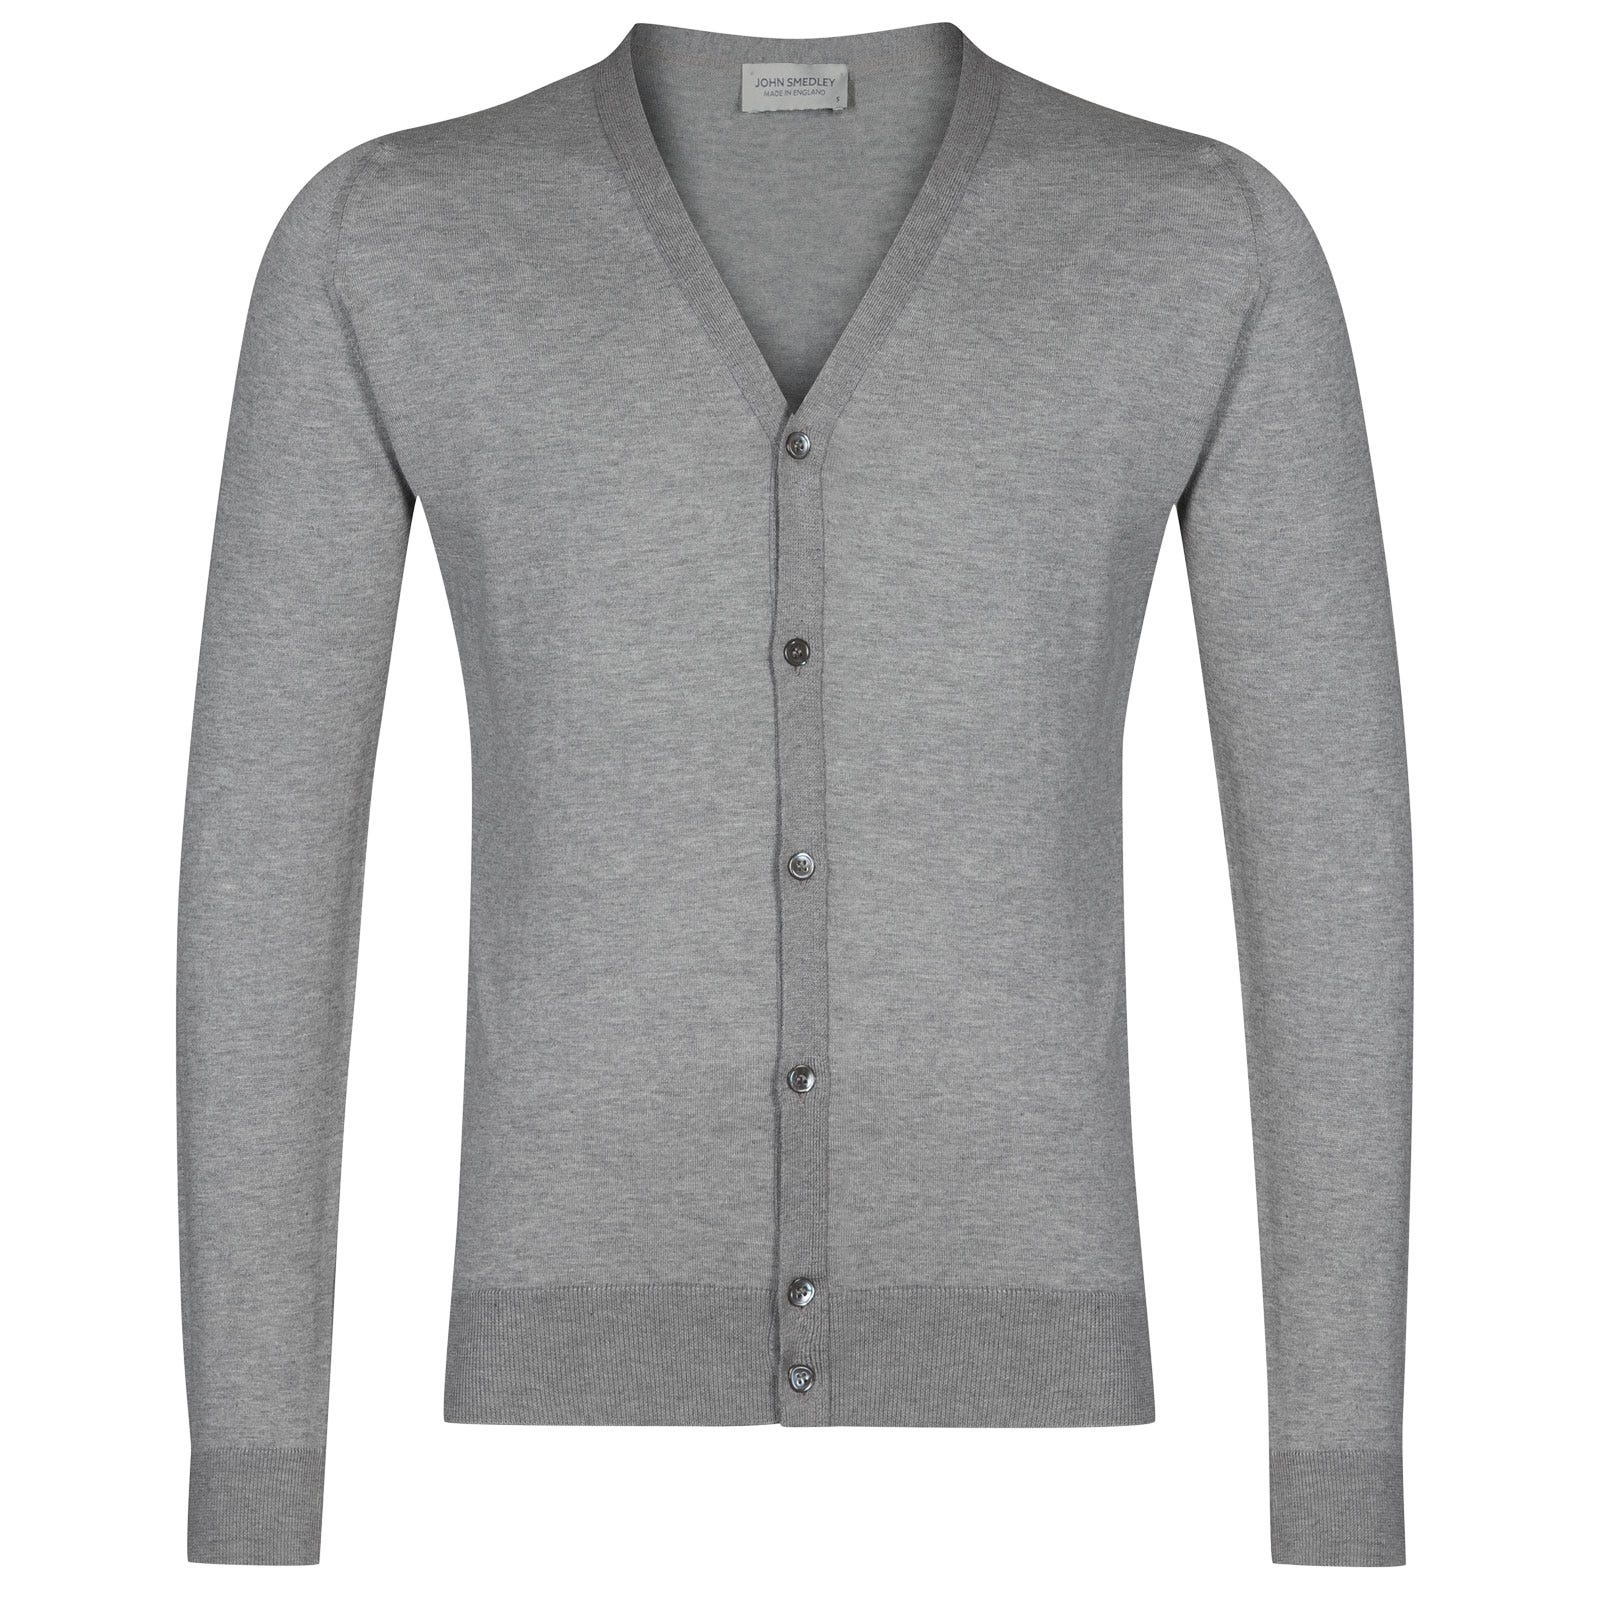 John Smedley whitchurch Sea Island Cotton Cardigan in Silver-XXL